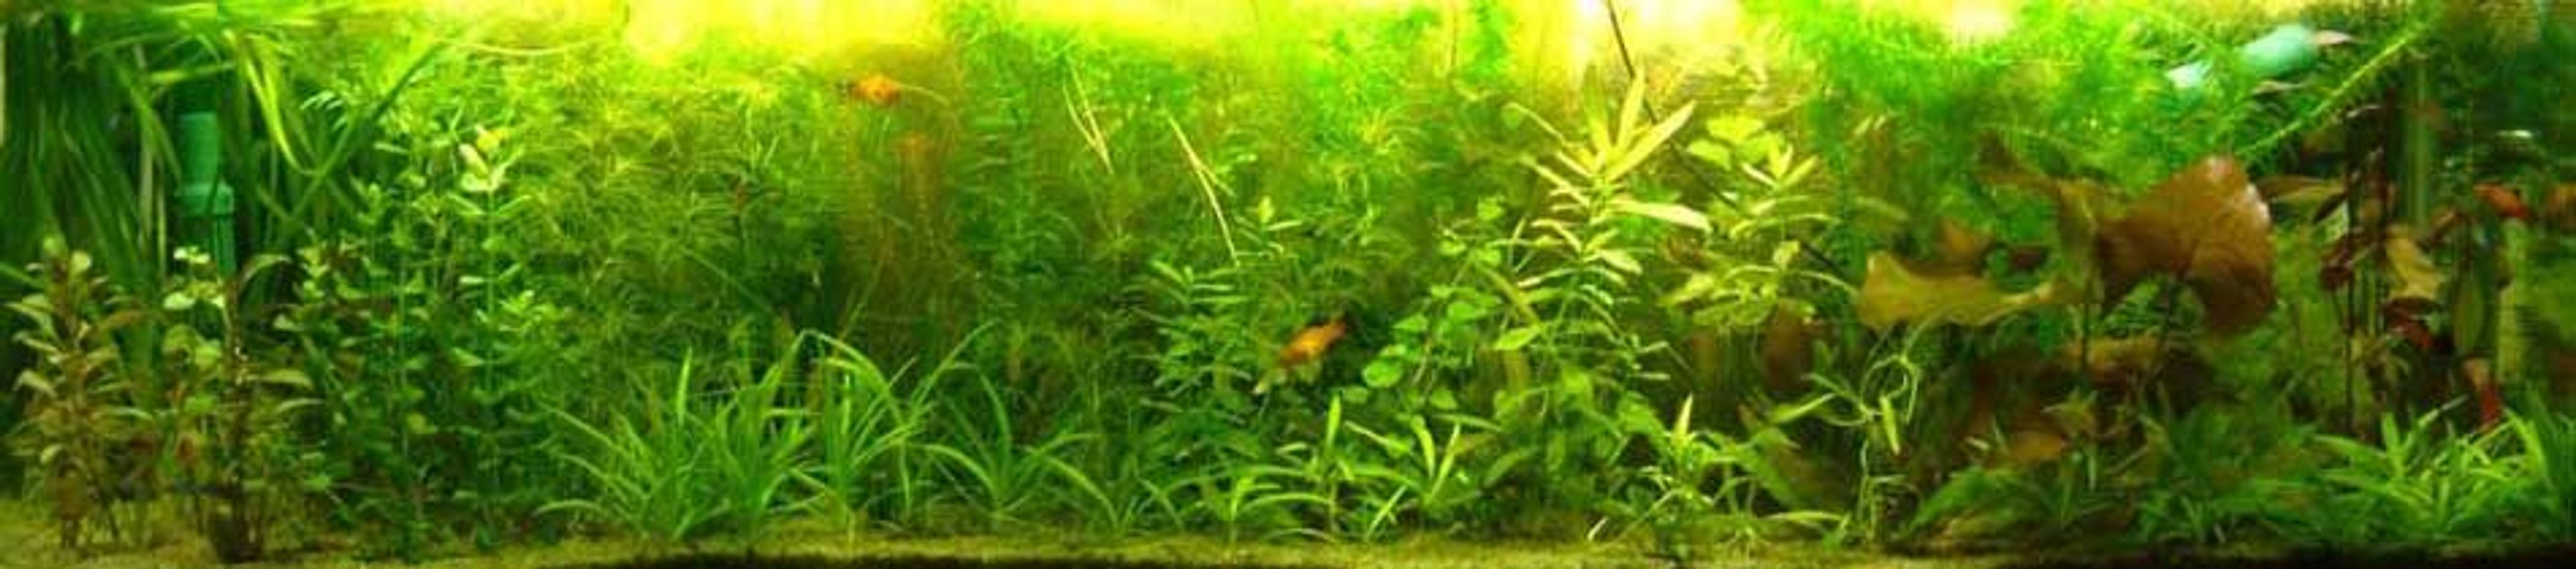 30 gallons planted tank (mostly live plants and fish) - My fish tank...before was only plants with mollies